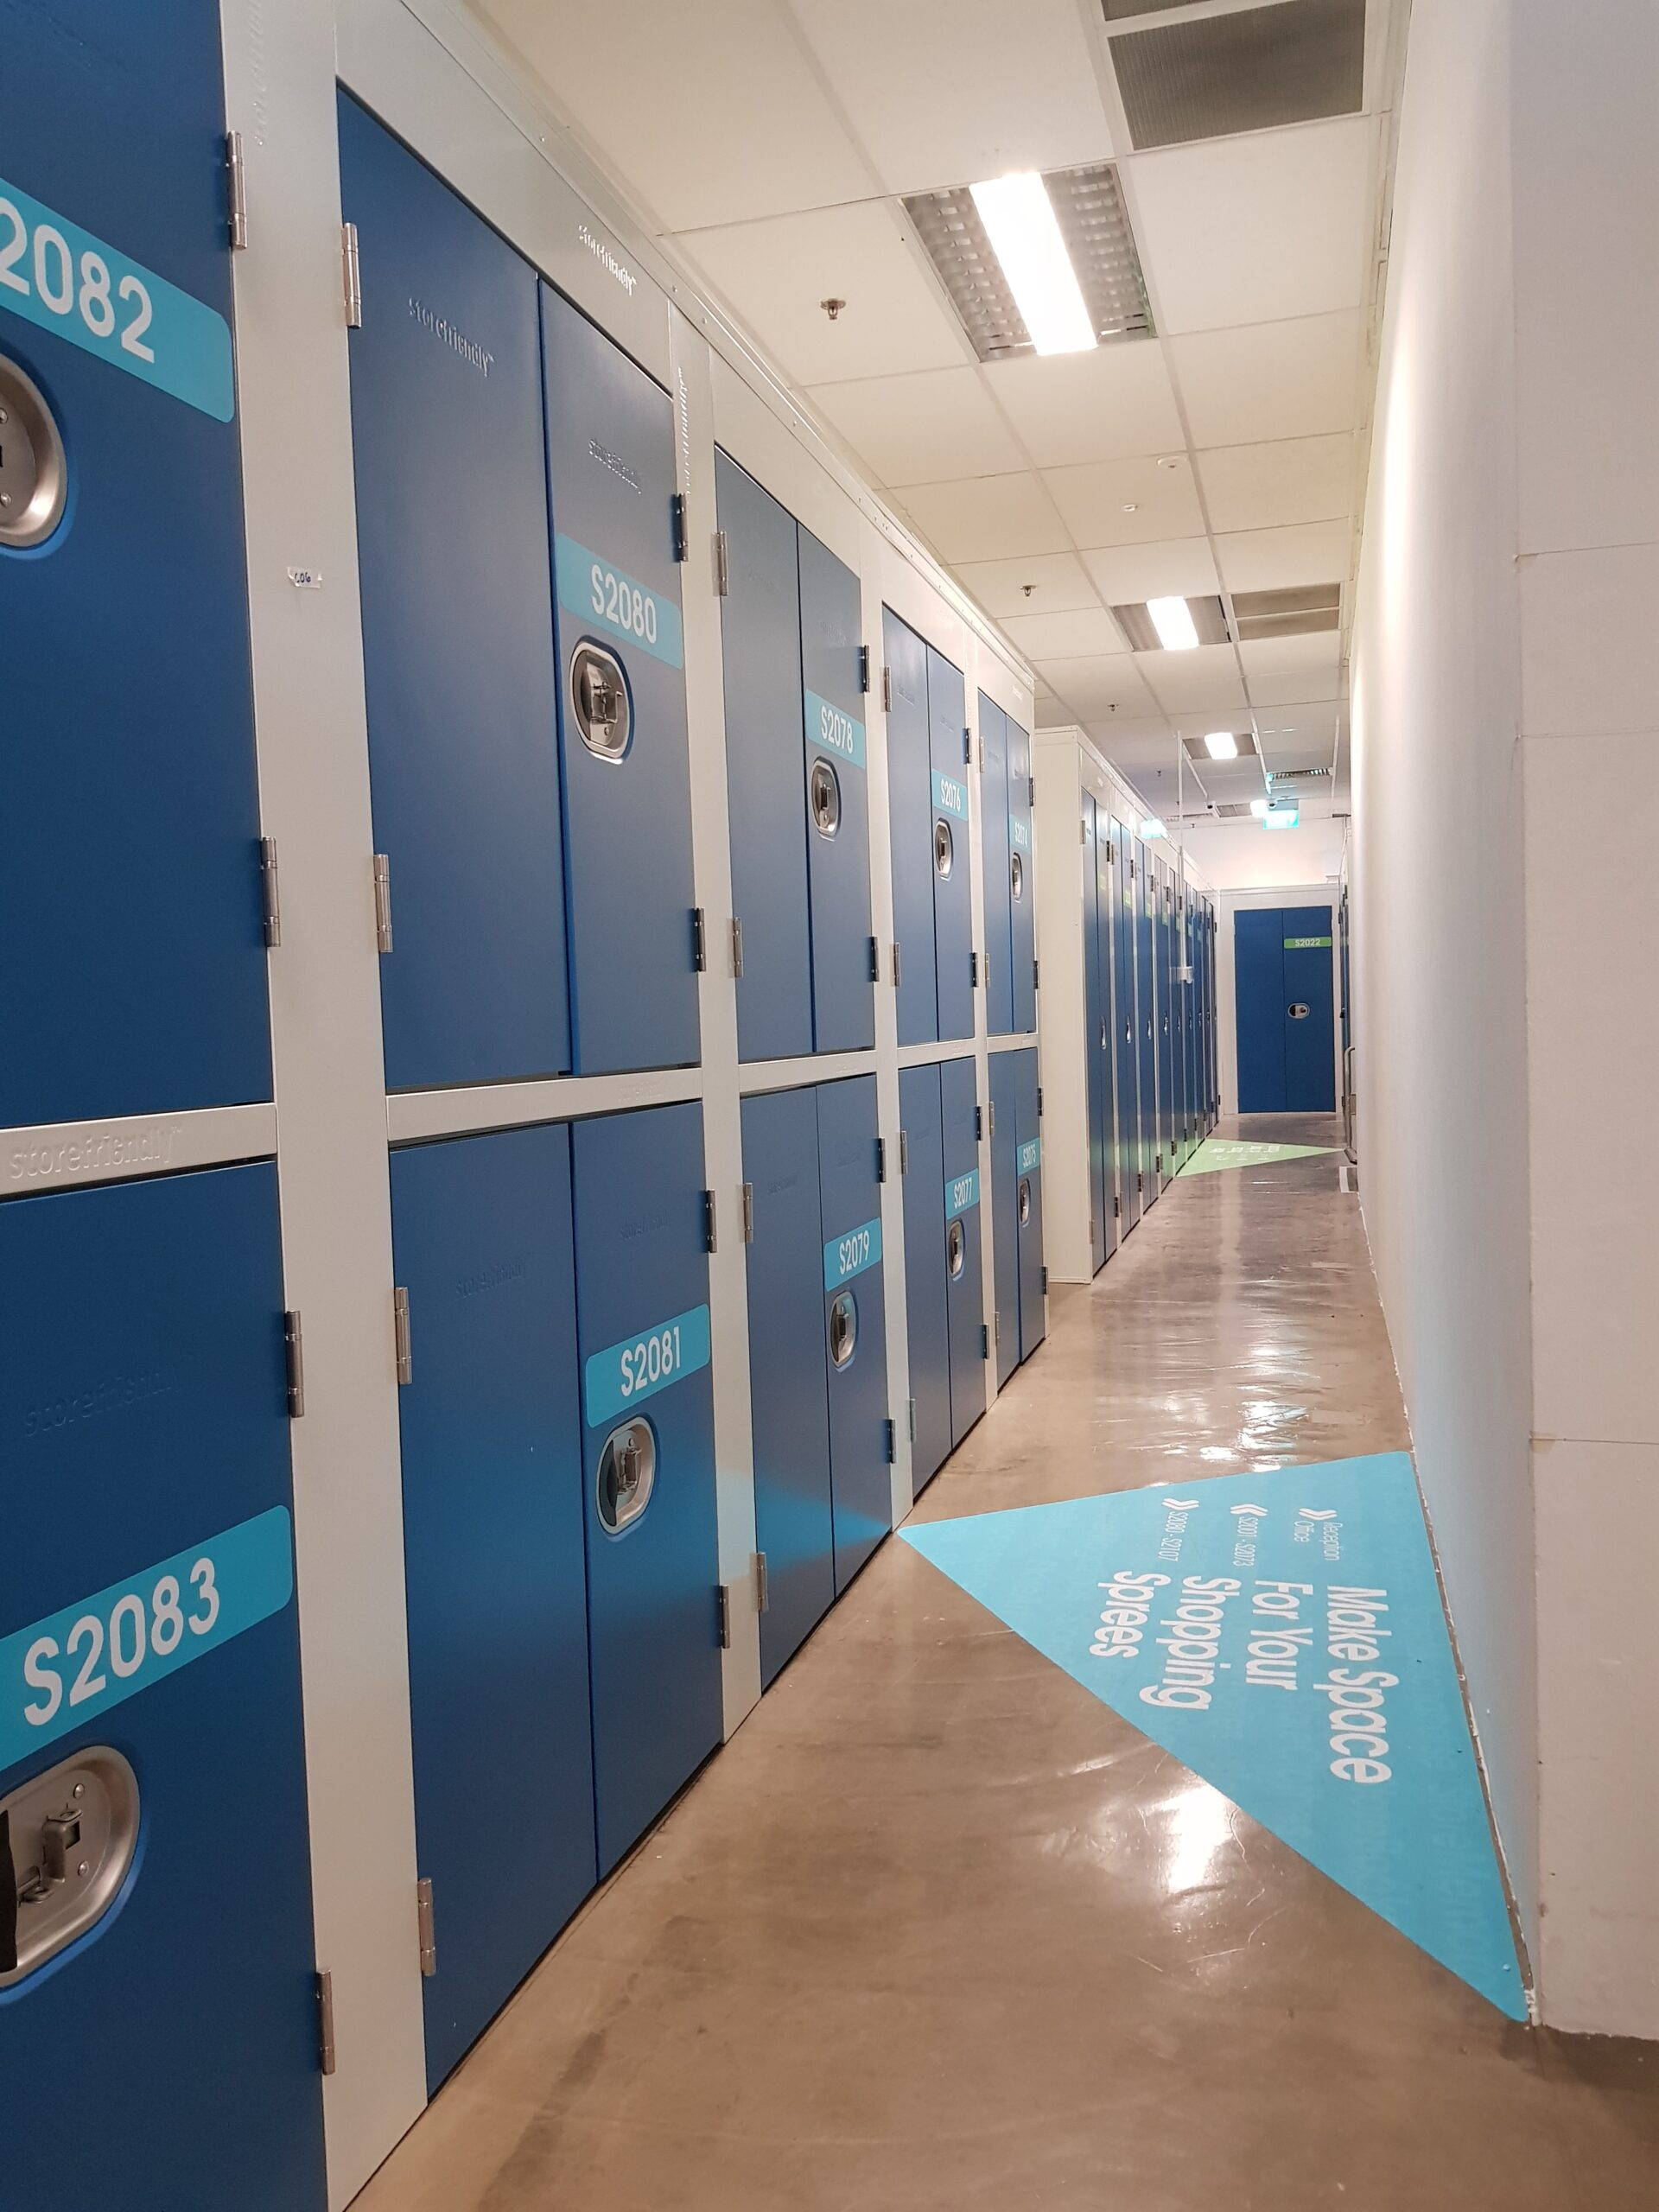 Storefriendly storage units